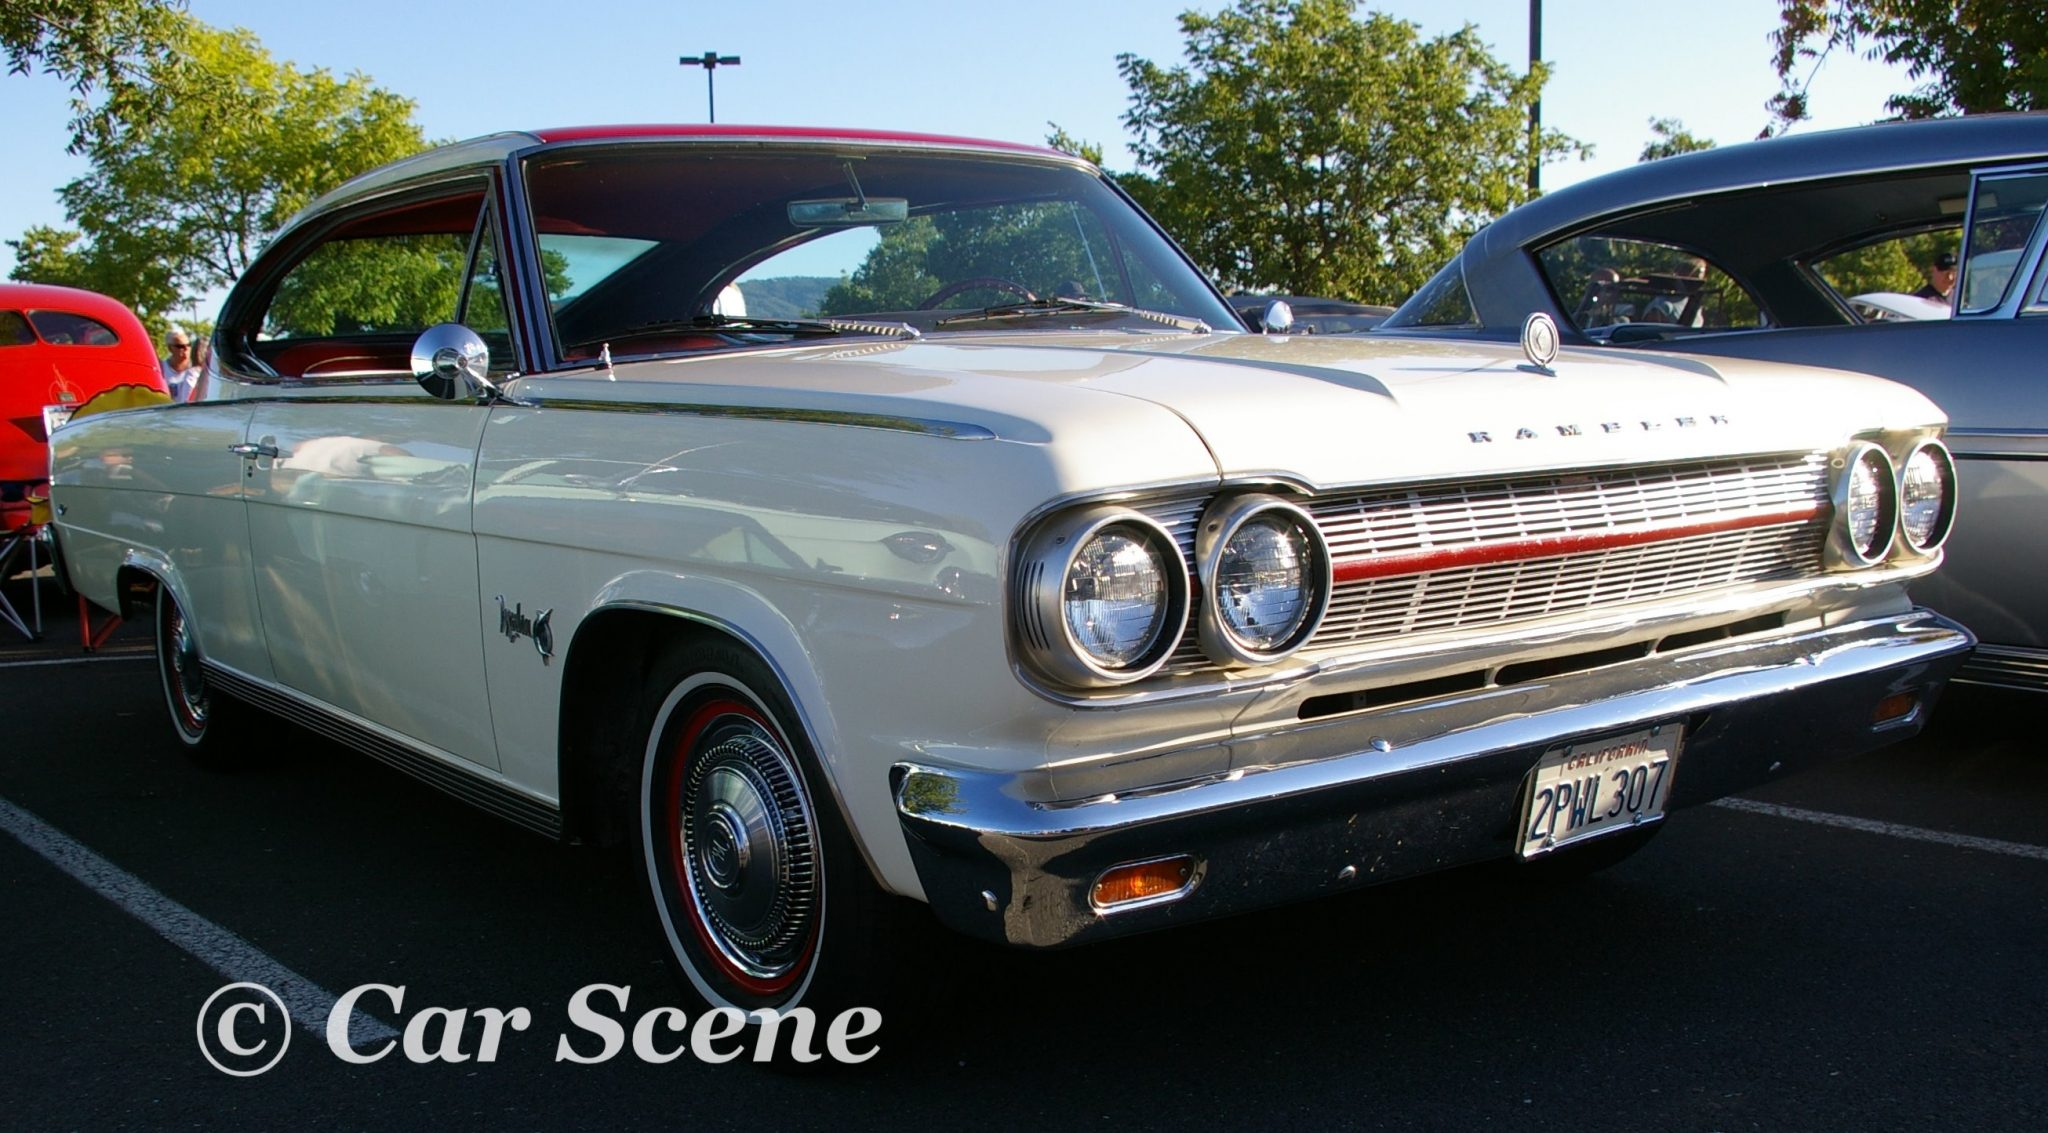 1965 Nash Rambler Marlin front three quarters view